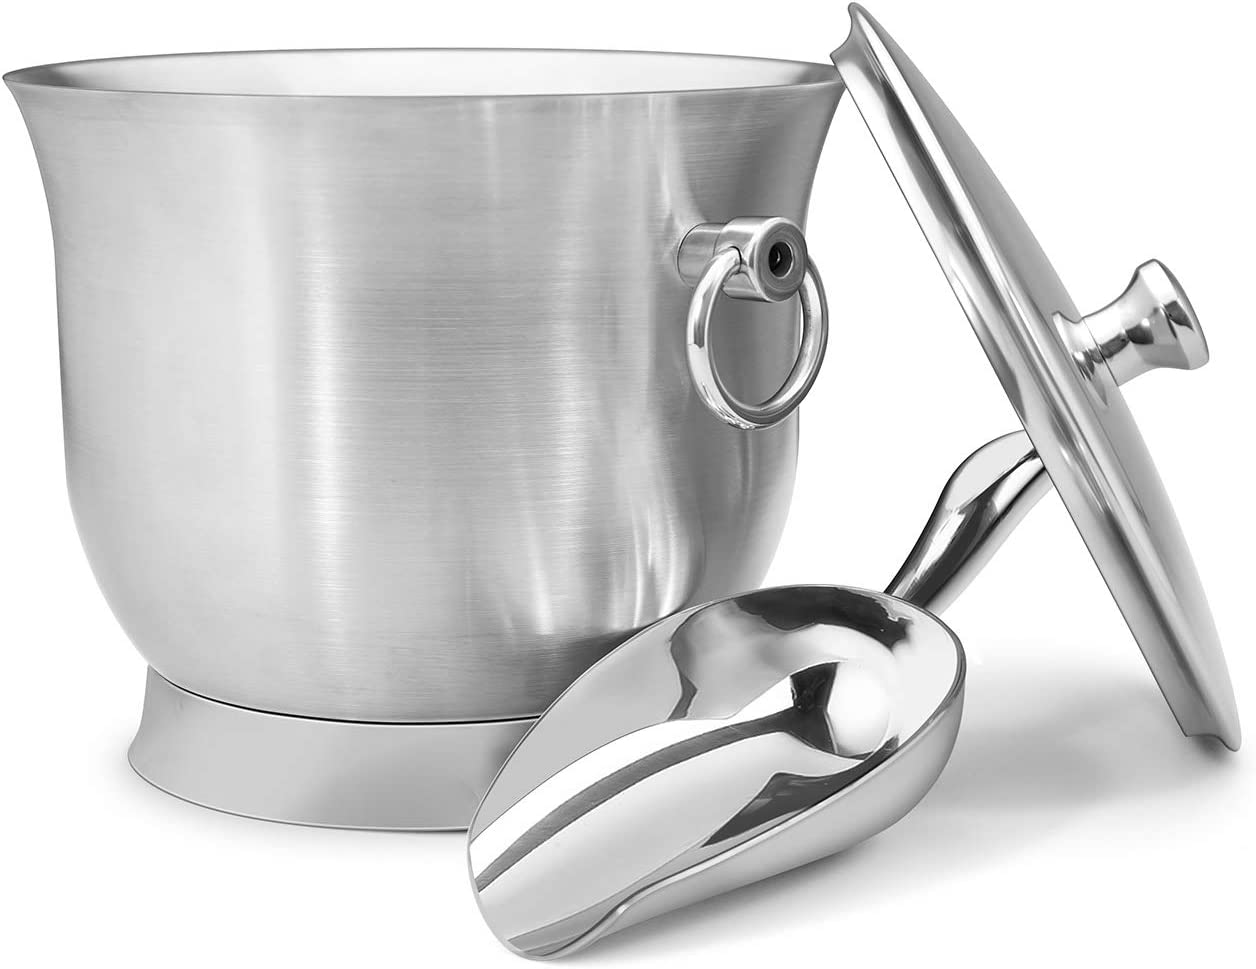 Fortune Candy Insulated Ice Bucket Max 44% Finally popular brand OFF - Ste Walled Double Stainless